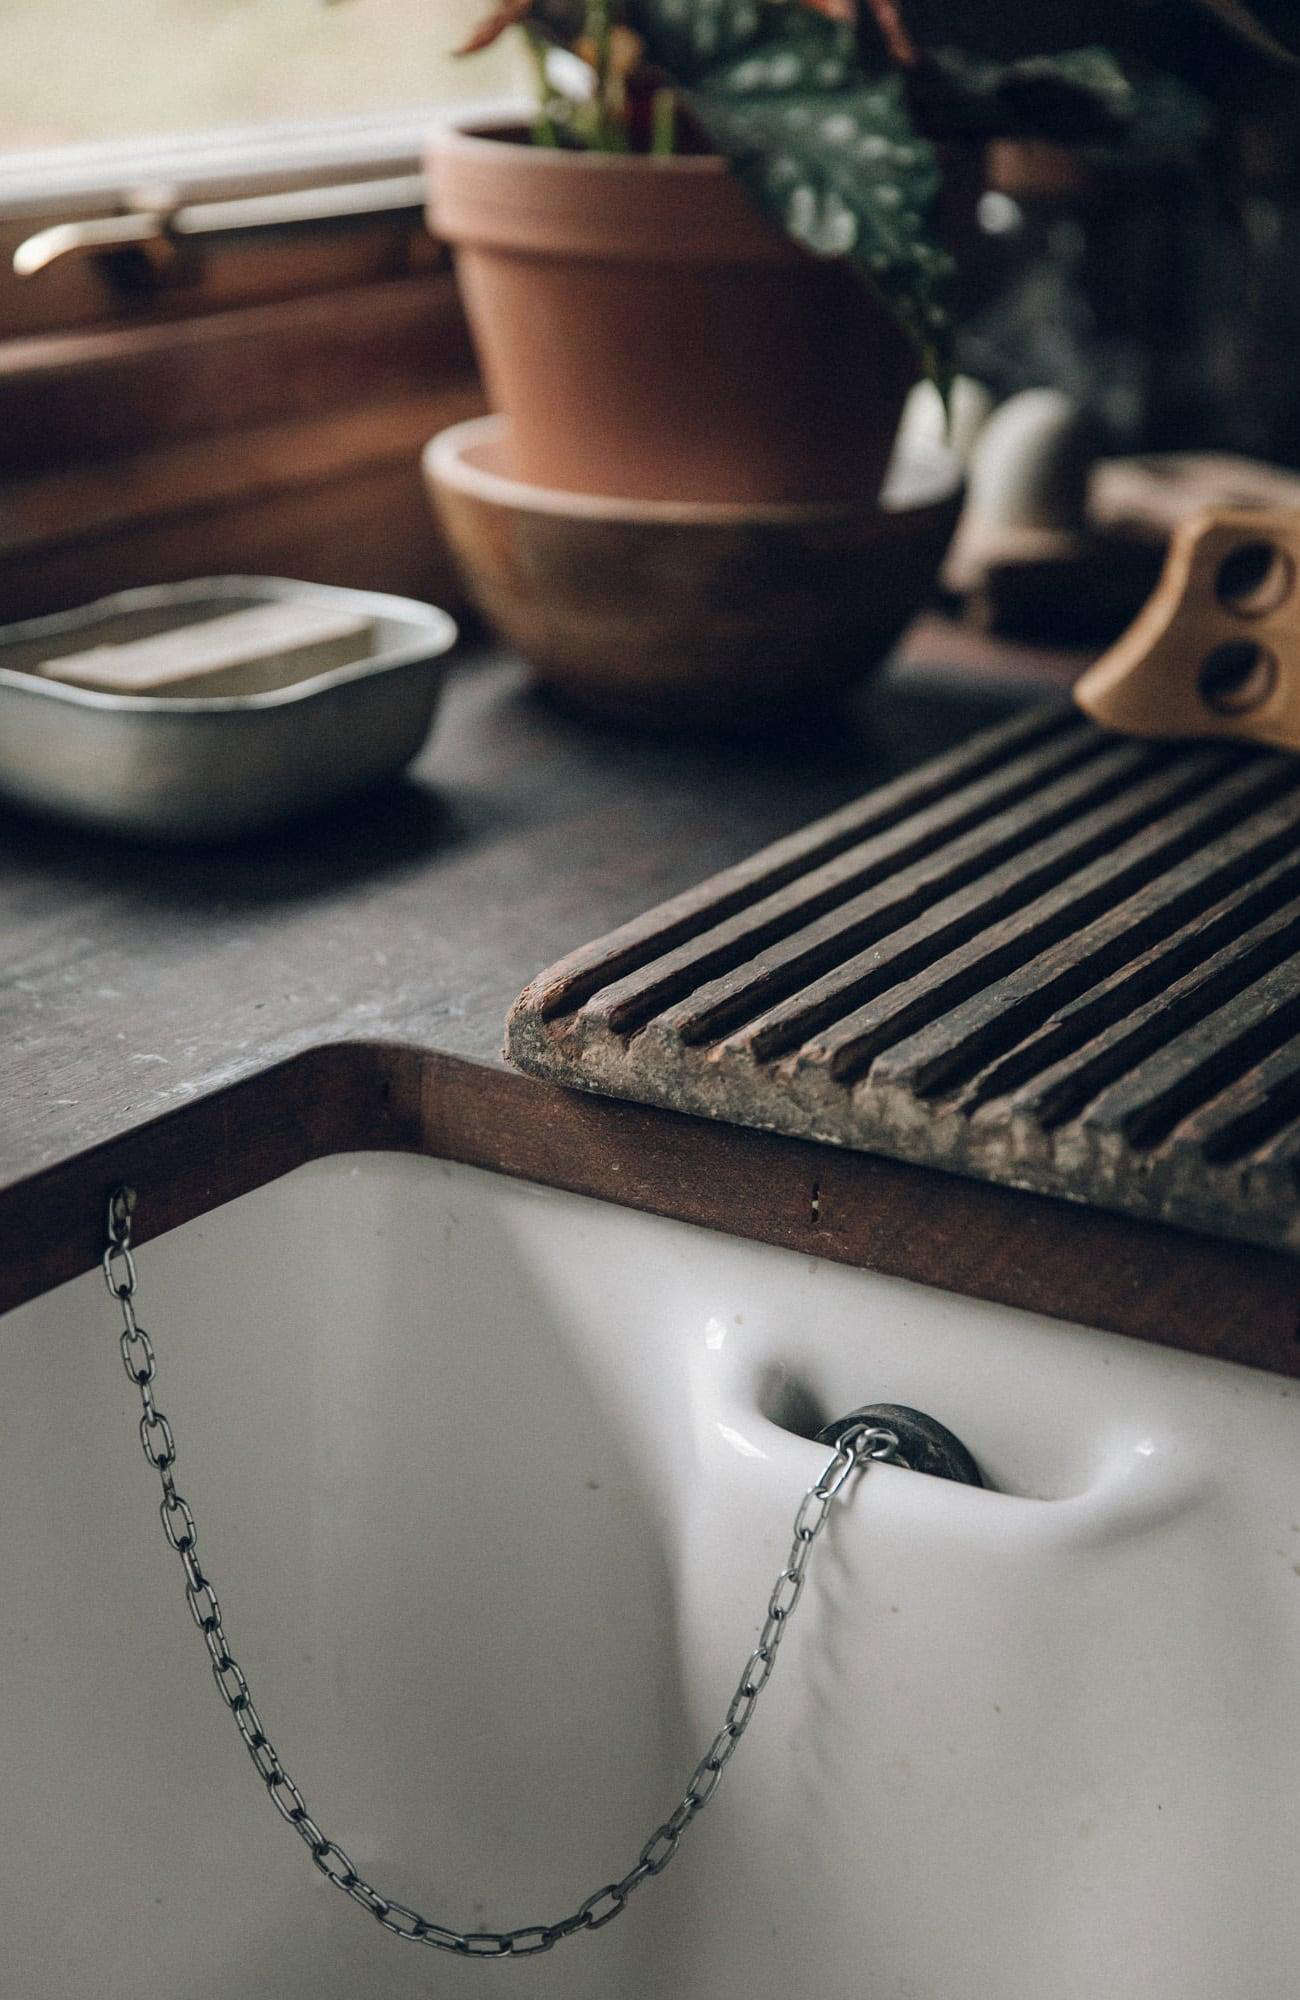 The early 00s ceramic sink is detailed with a stopper pocket.